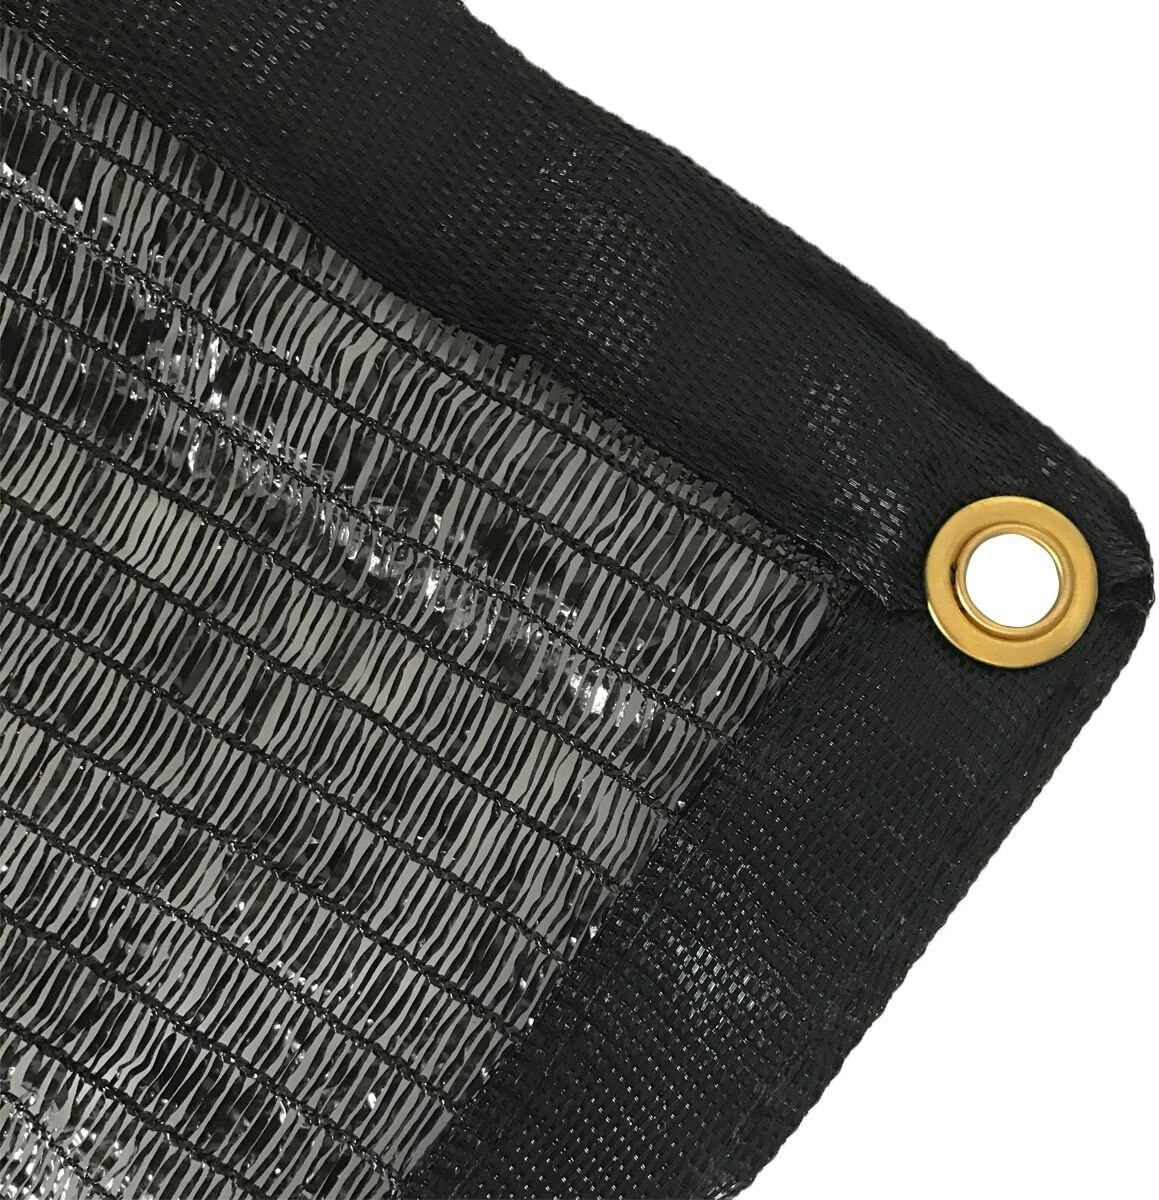 EasyShade 50 Black Shade Cloth Taped Edge with Grommets UV 12 ft x 20 ft